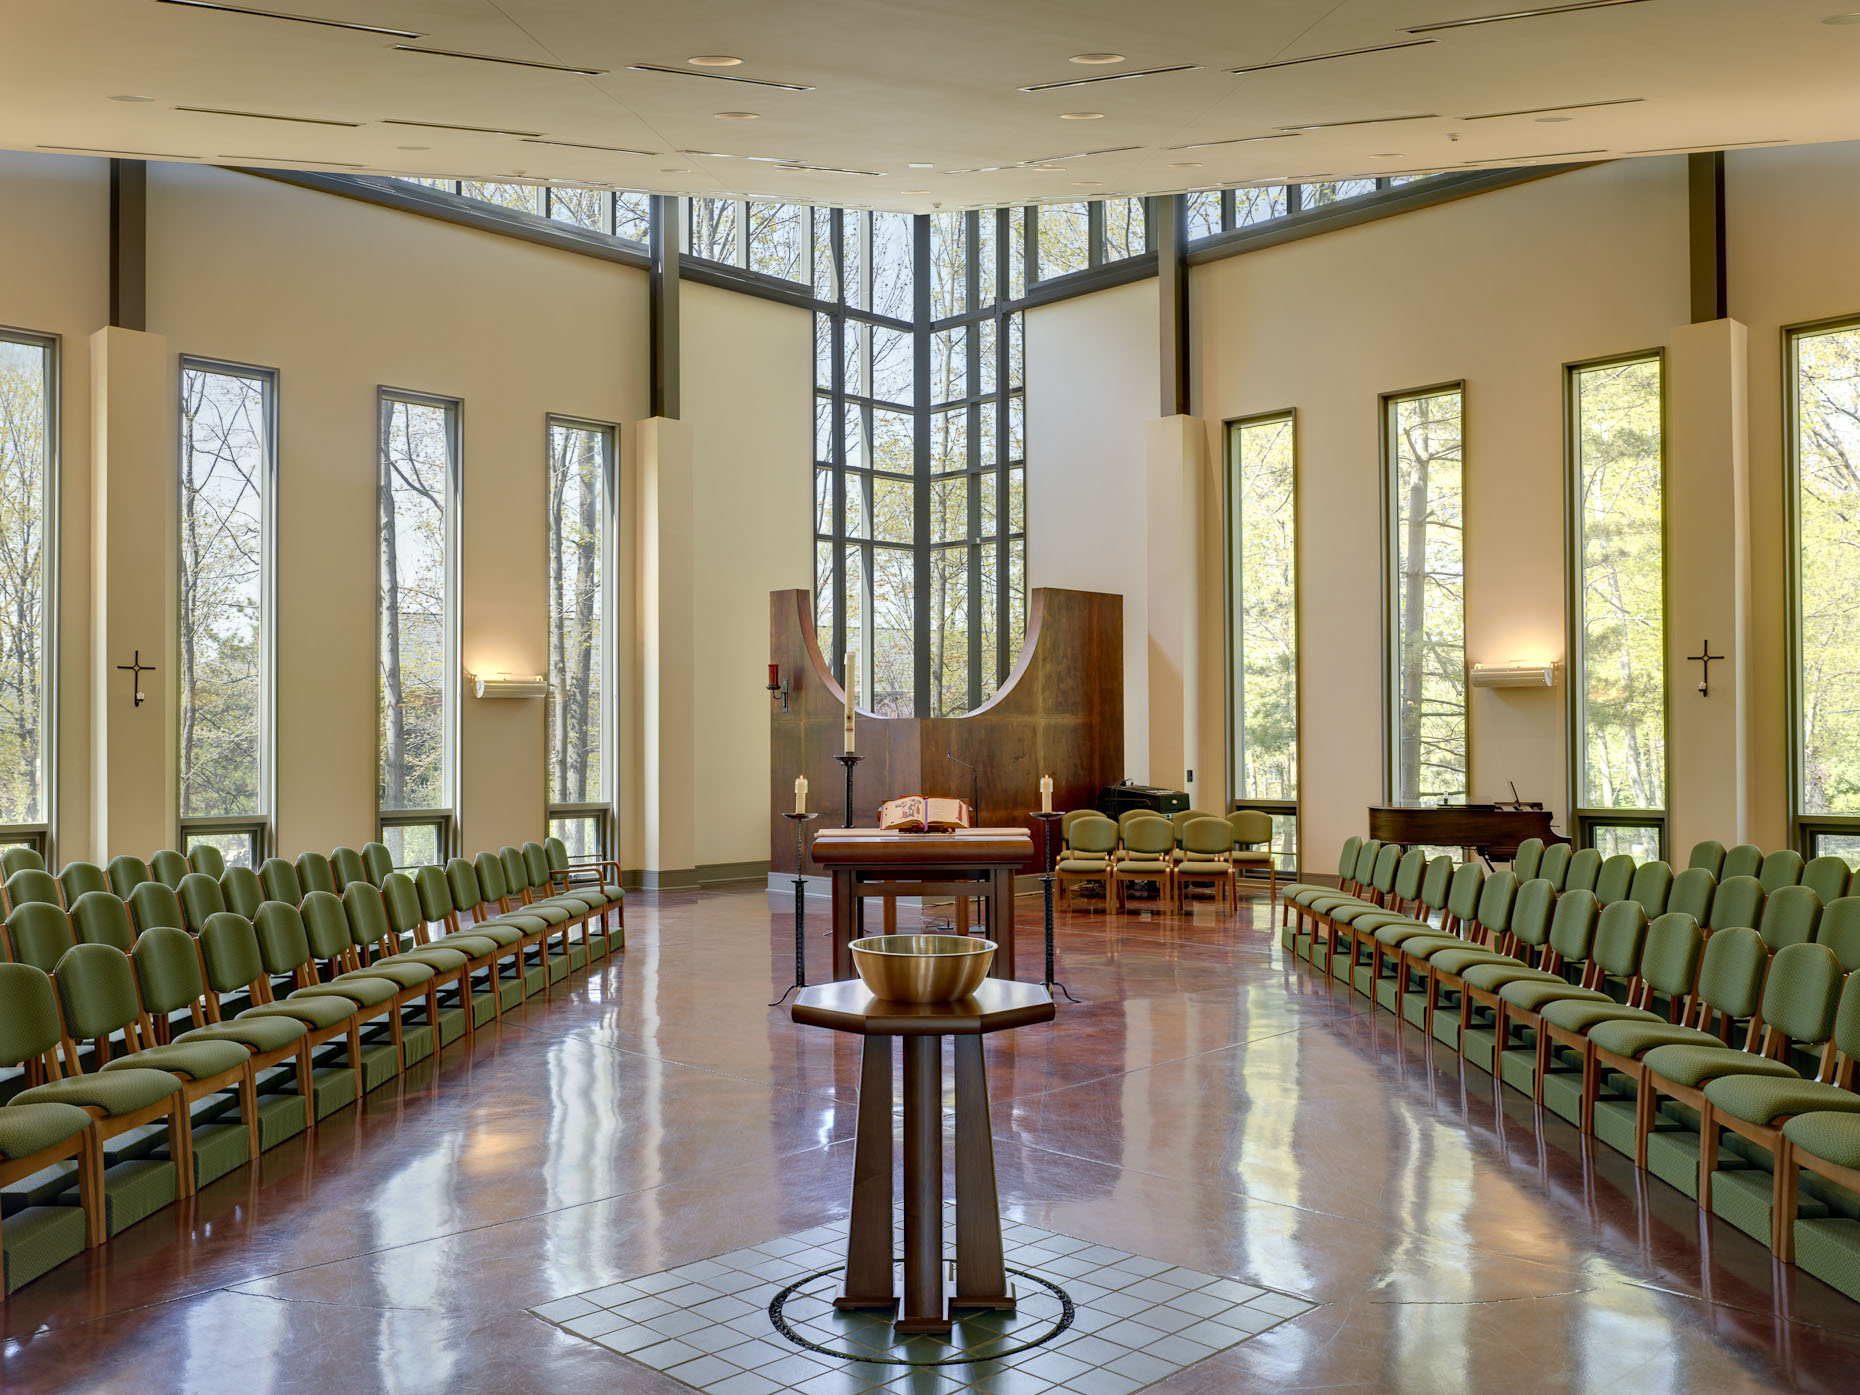 Wright State University St. John Bosco Chapel by The Collective photographed by Brad Feinknopf based in Columbus, Ohio